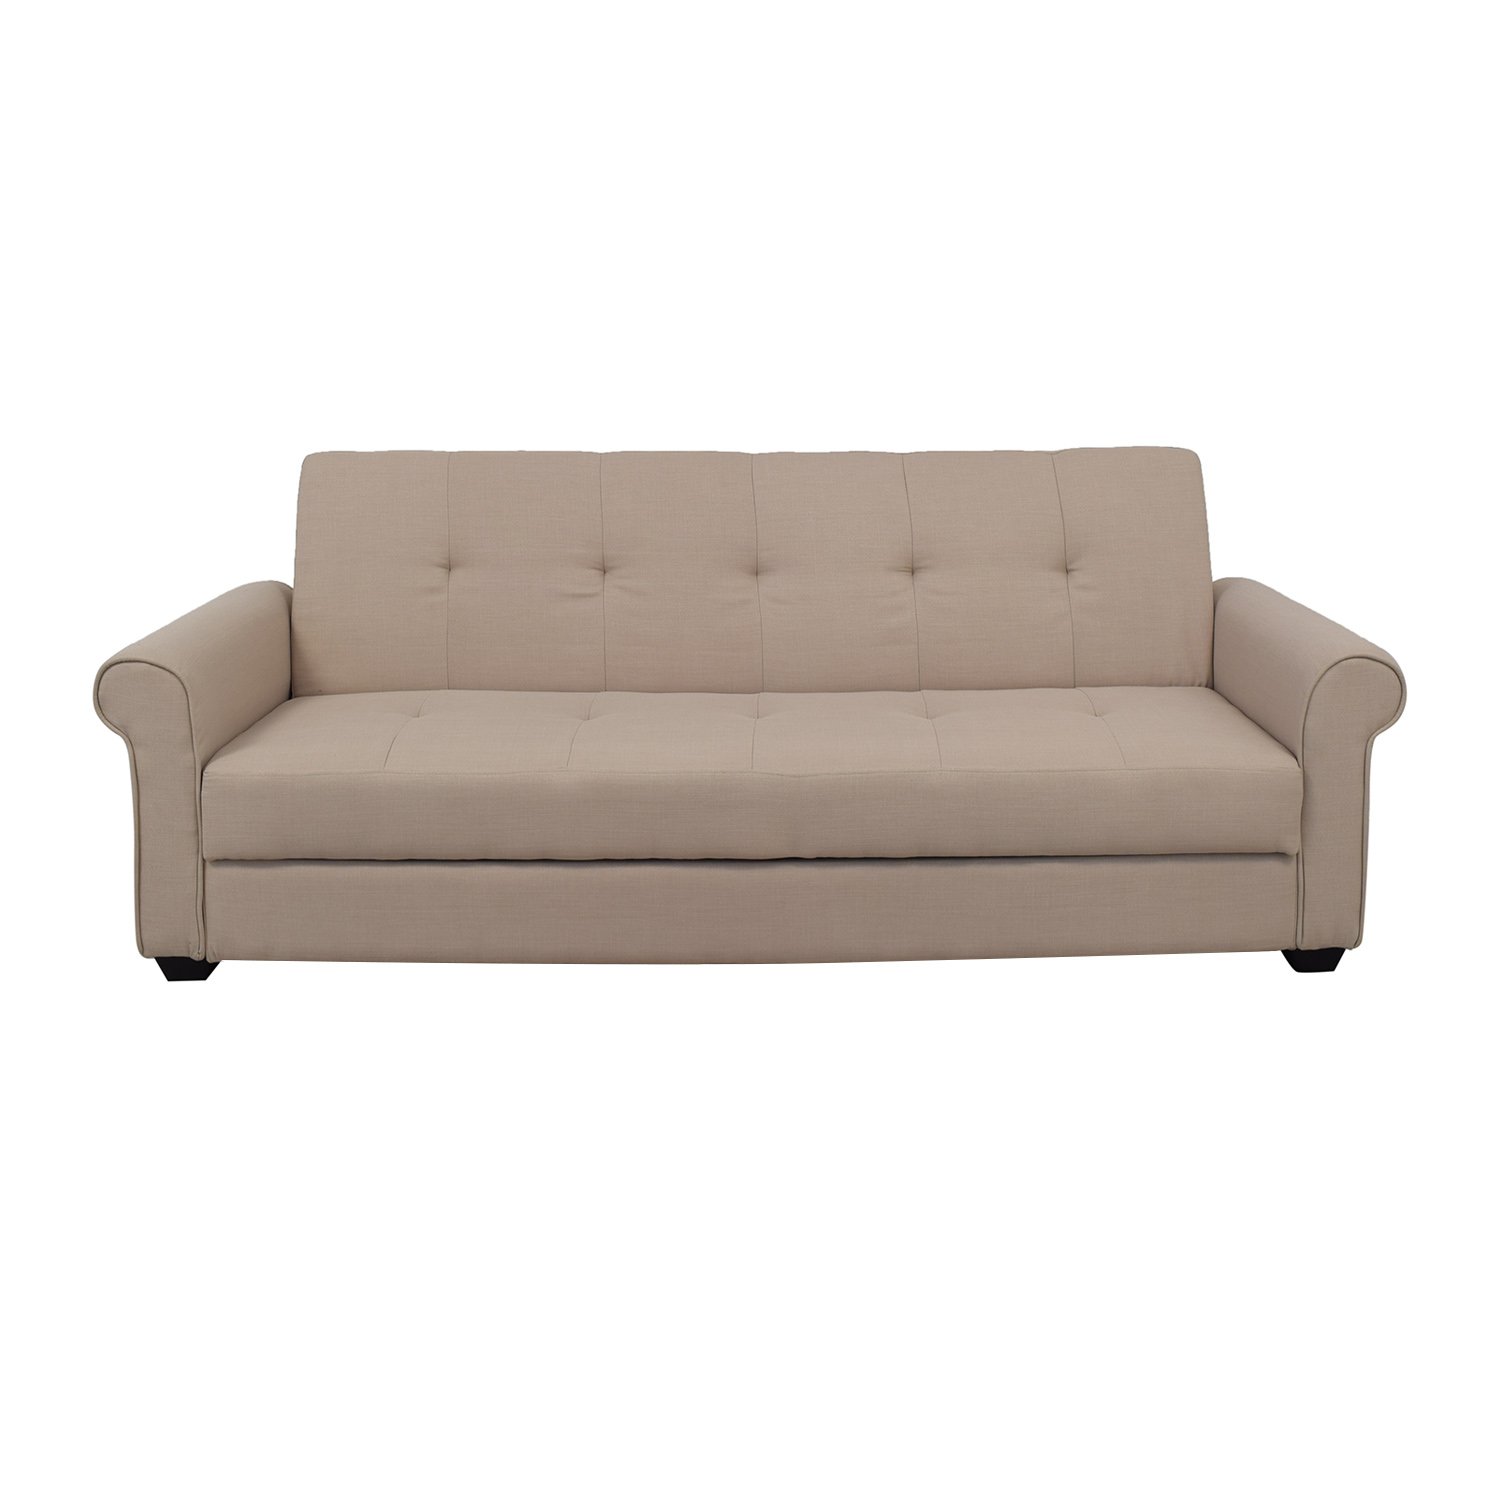 Wayfair Wayfair Latitude Run Garry Beige Tufted Covertible Sofa used